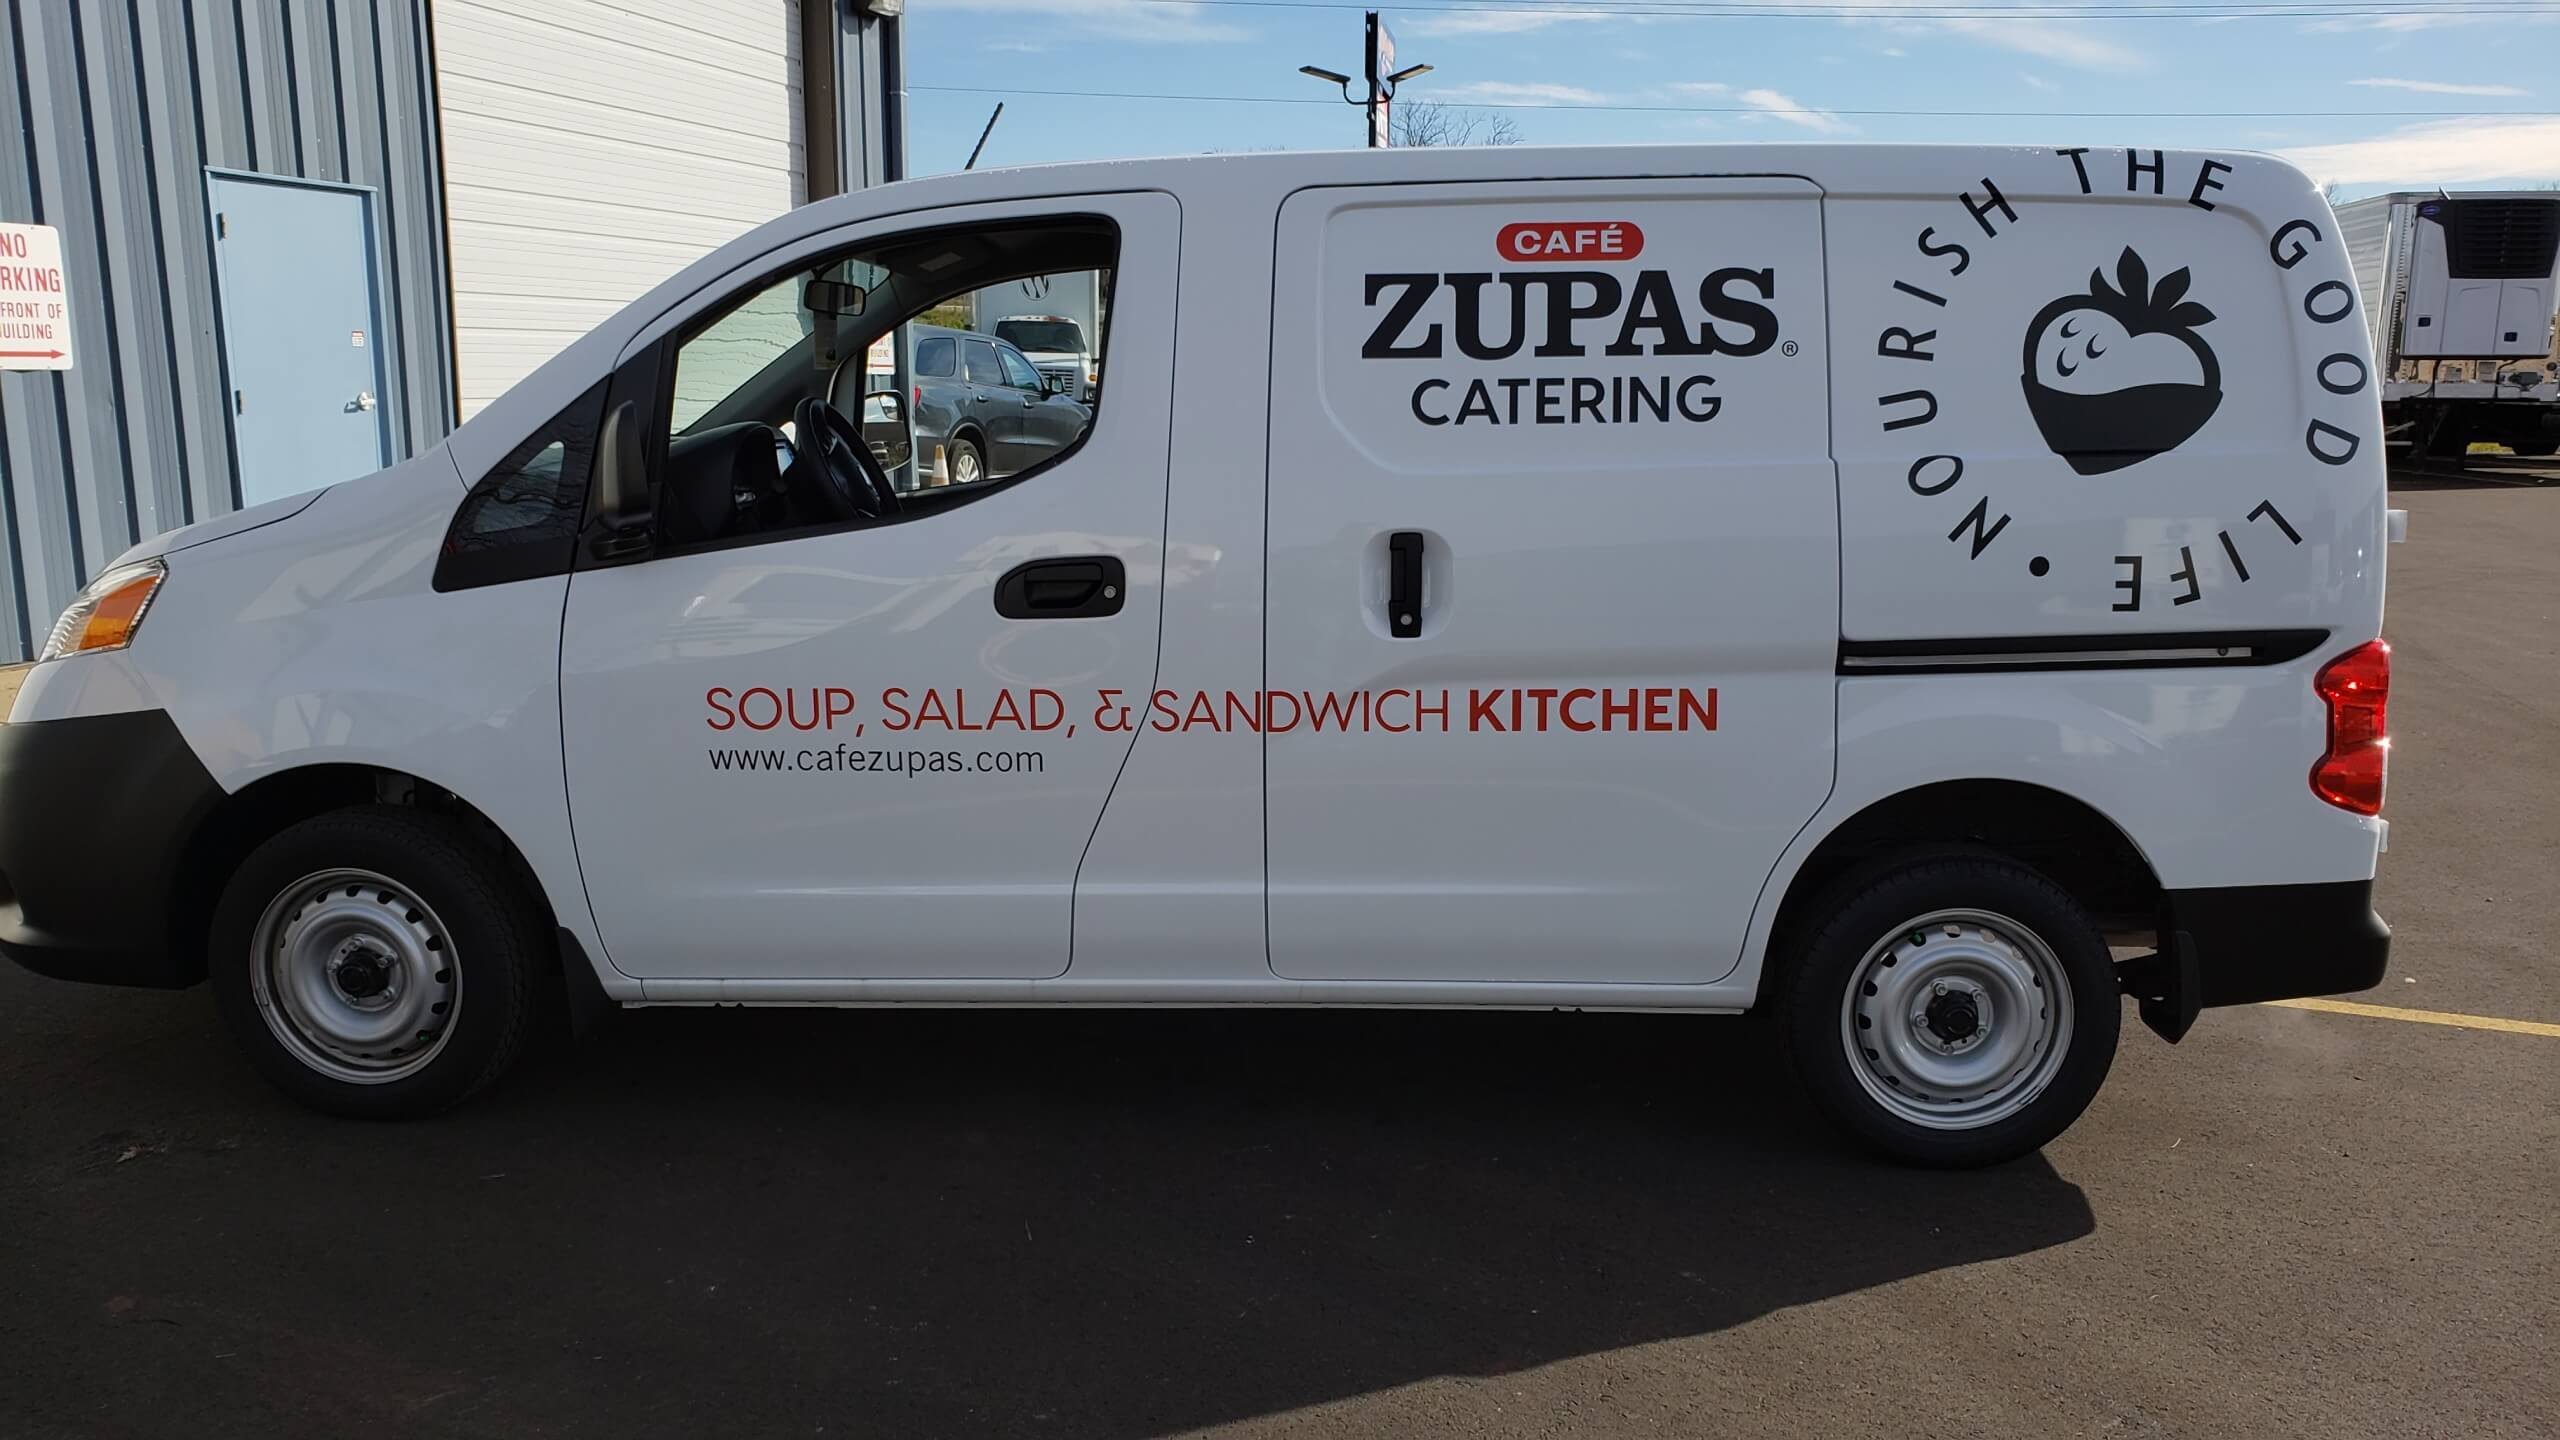 Cafe Zupas Catering vehicle graphics